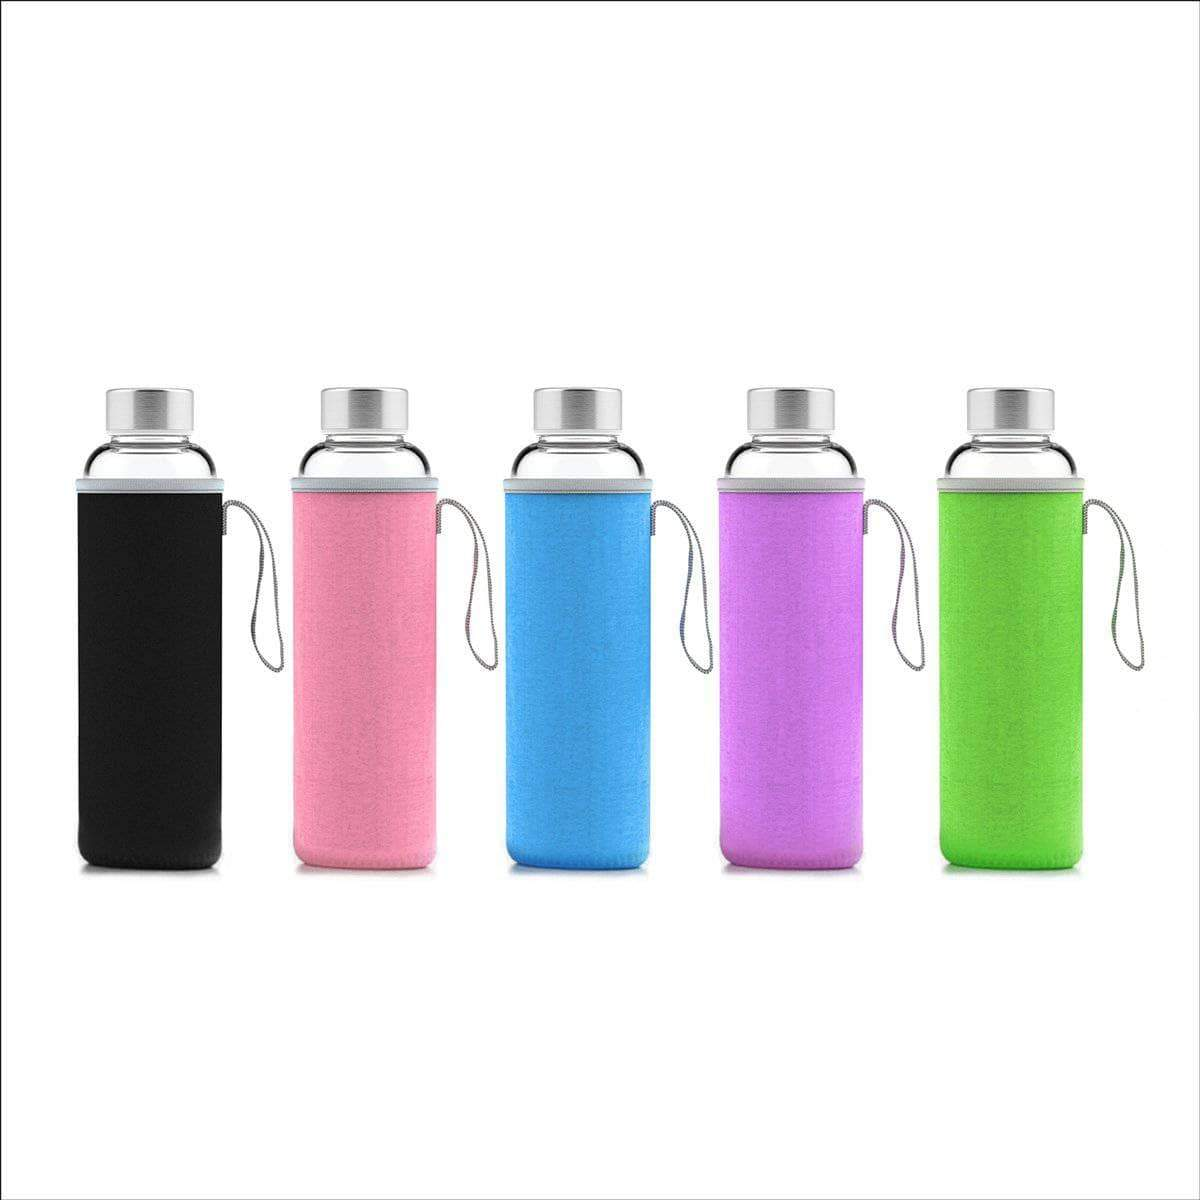 Geo Bottles Glass Bottles 18oz Hot and Cold Glass Bottle